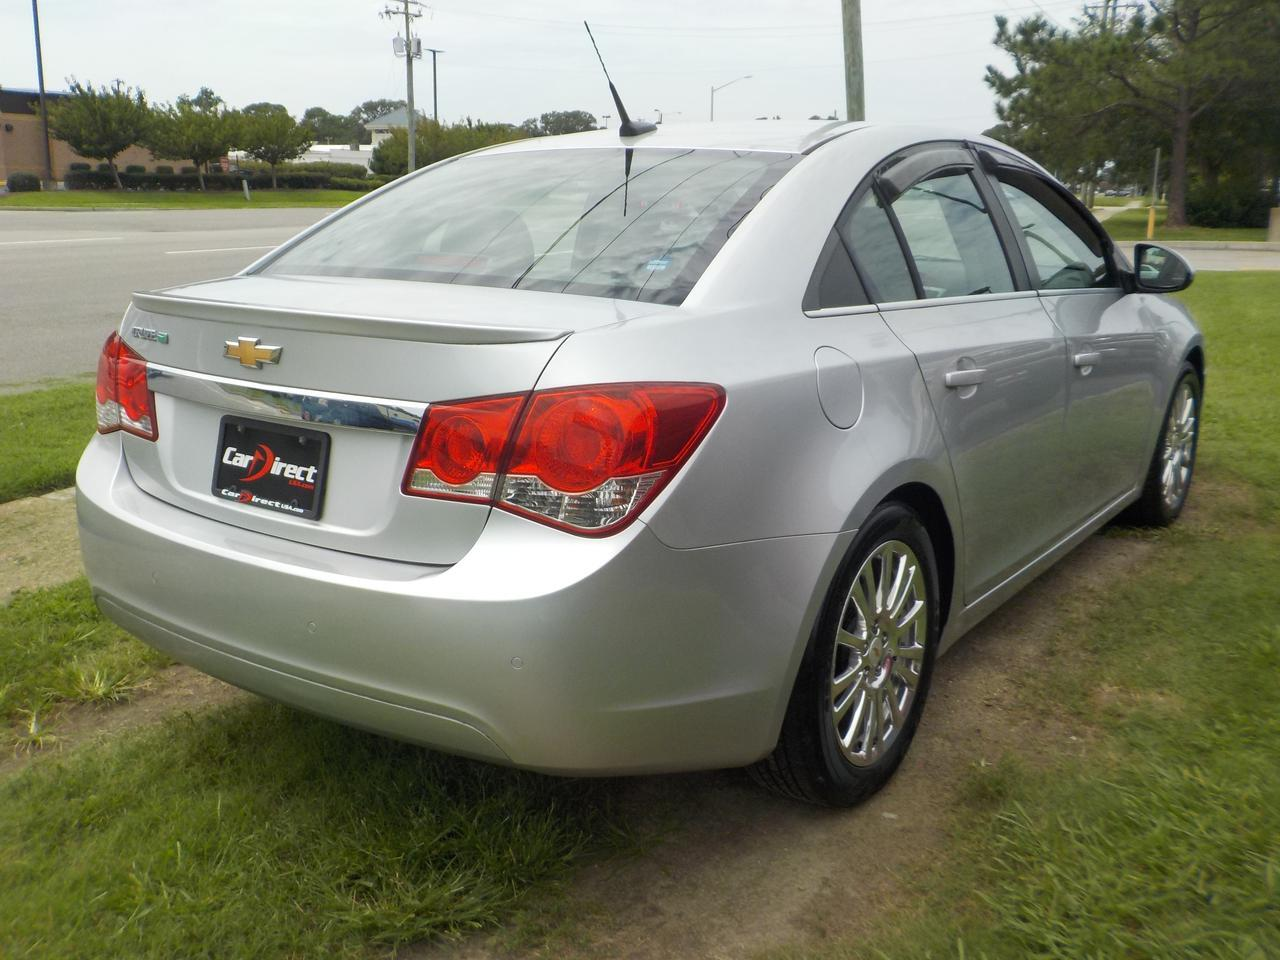 2012 CHEVROLET CRUZE ECO, FRONT & REAR AIRBAGS, CLIMATE CONTROL, TILT & TELESCOPING STEERING WHEEL, REMOTE START!! Virginia Beach VA